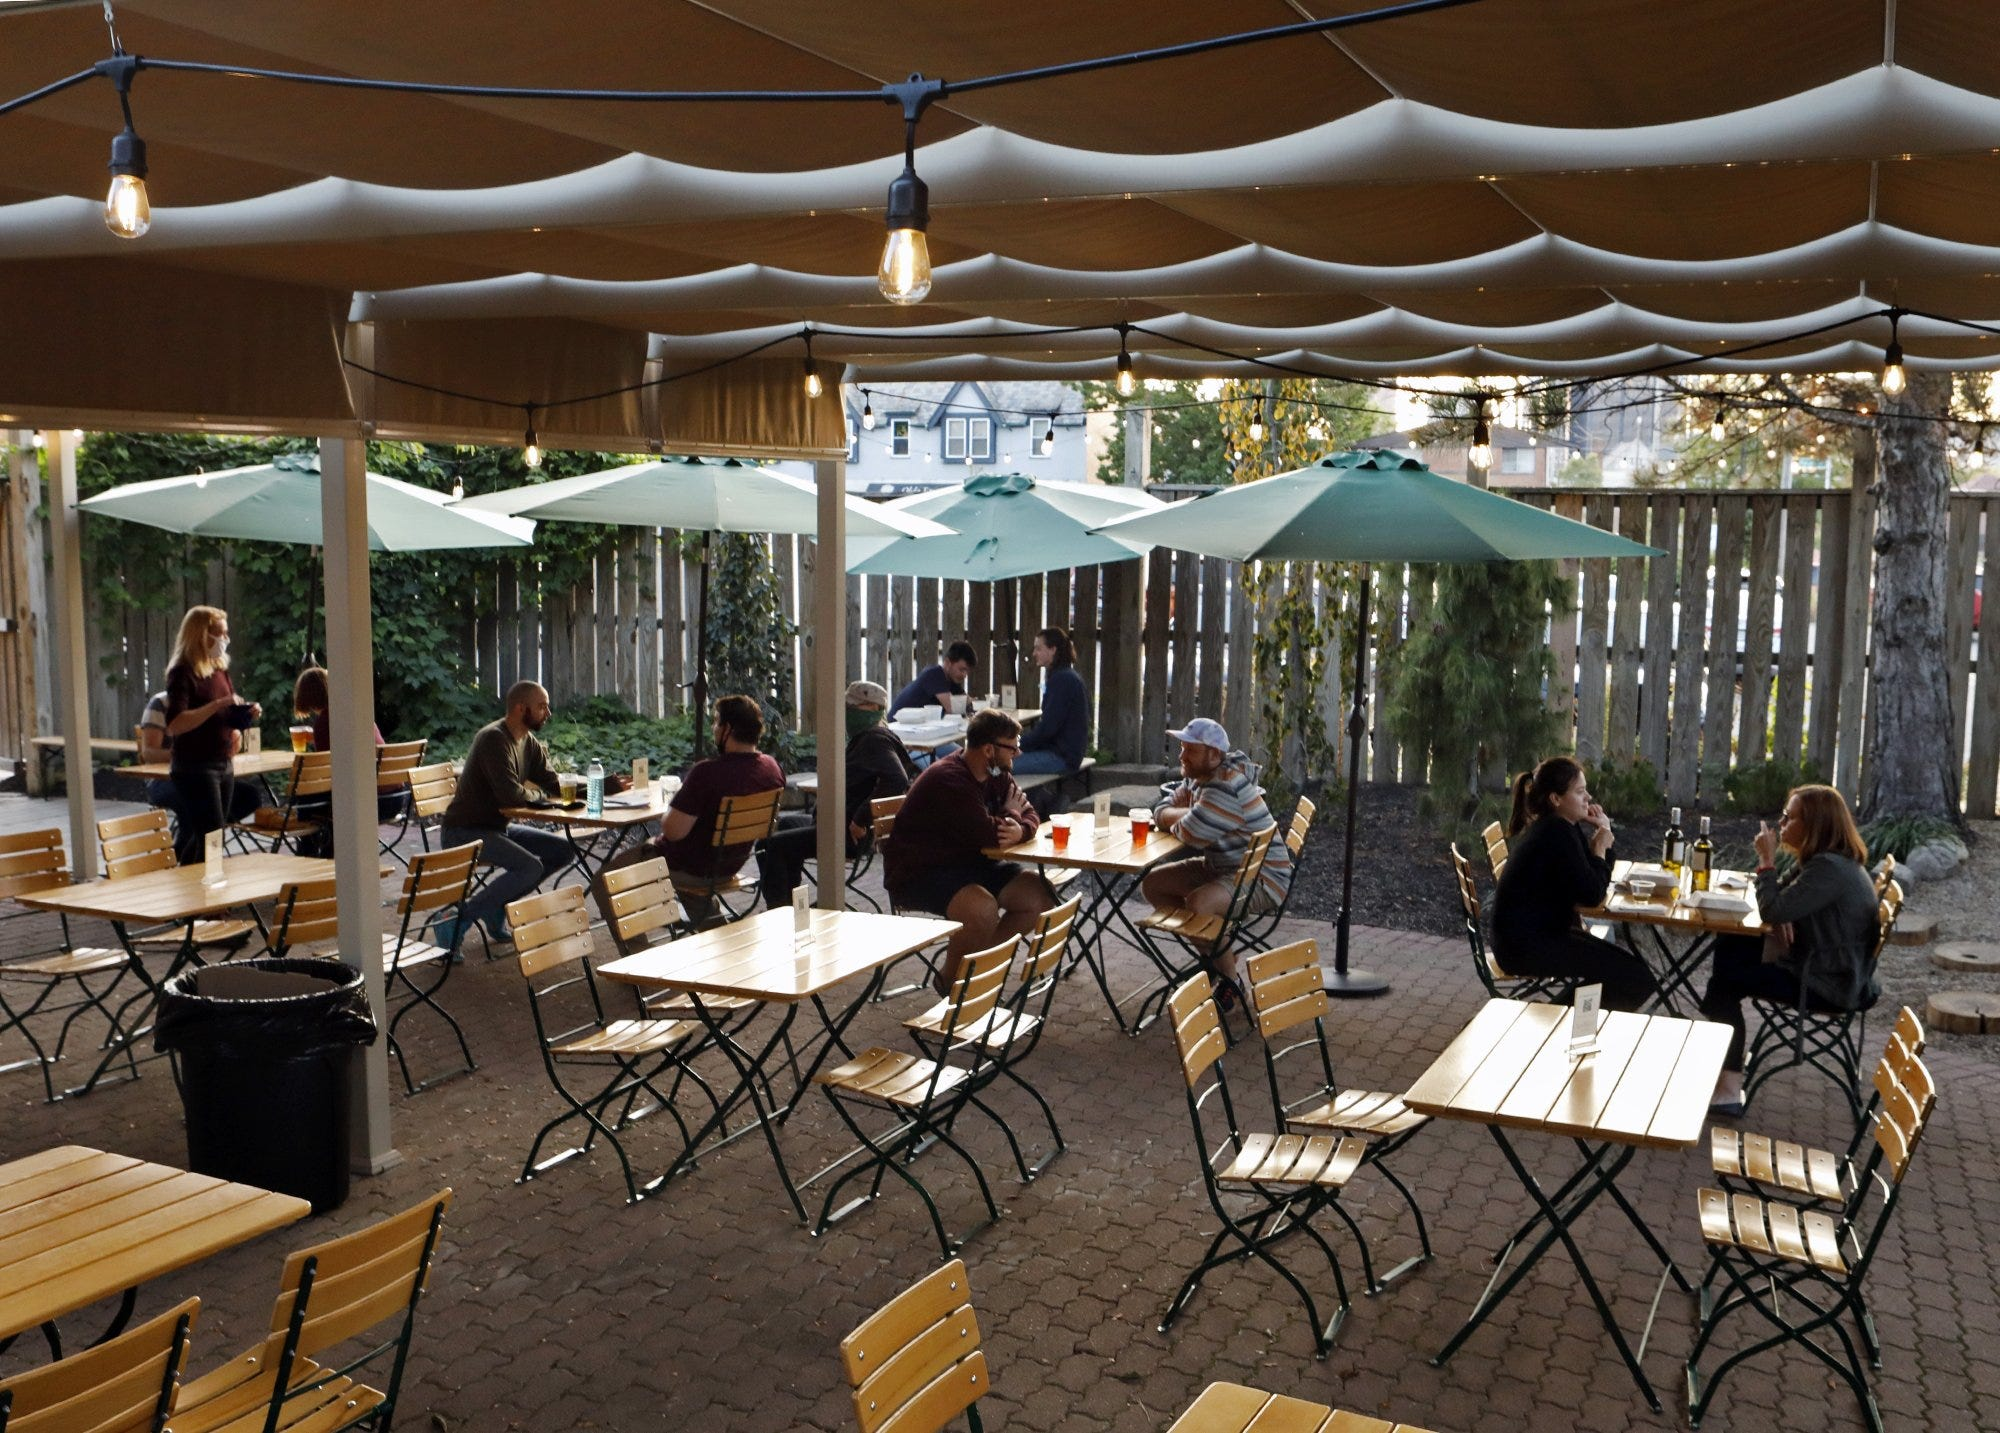 Restaurants Use Heated Tents To Keep Diners Outside In Covid 19 Winter